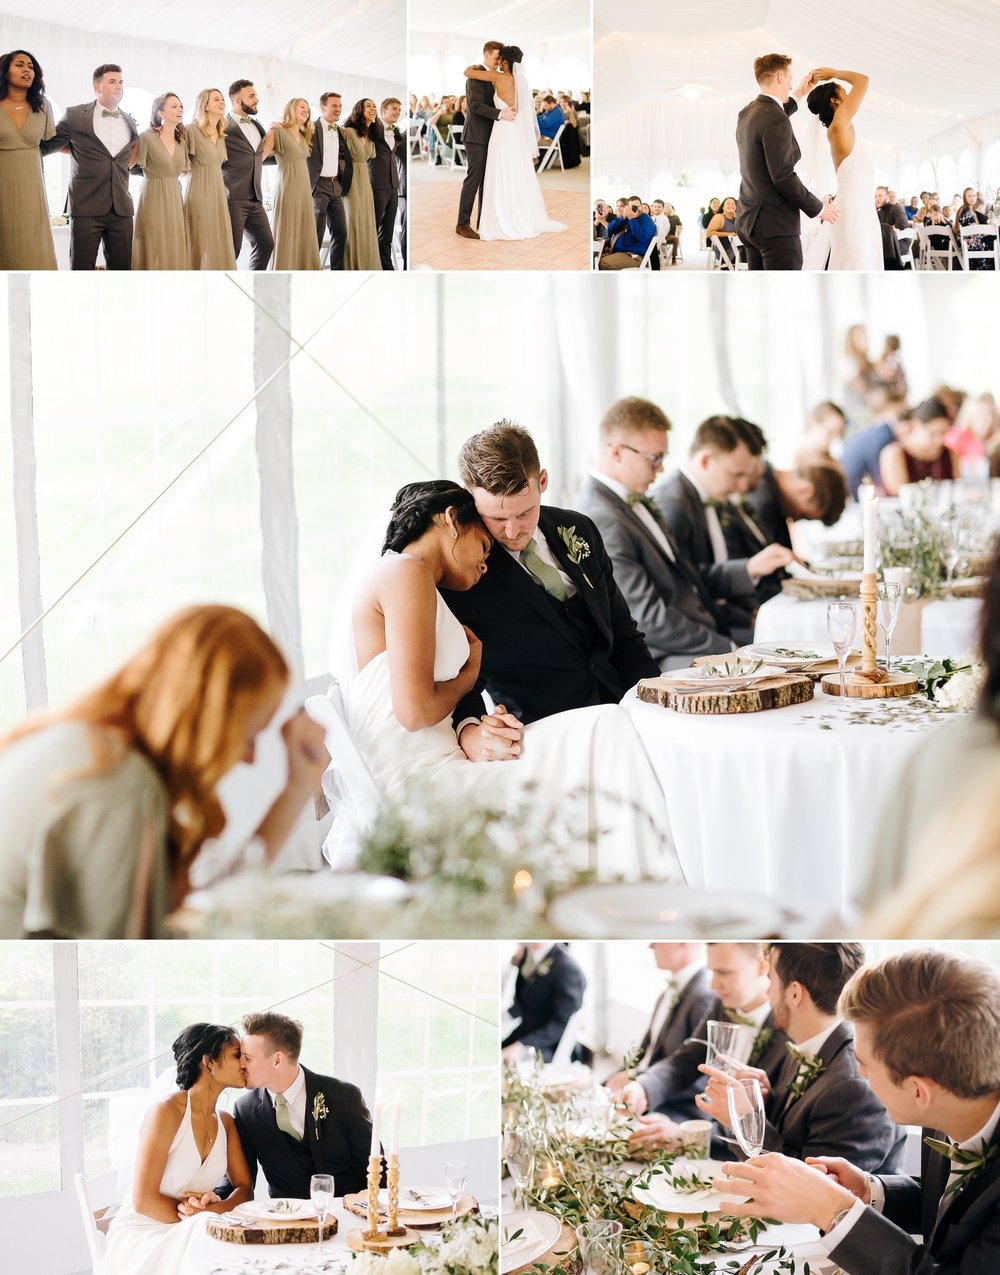 wisteria_ridge_mountain_fall_wedding_ivory_gray_elegance_jonathan_hannah_photography_18.jpg